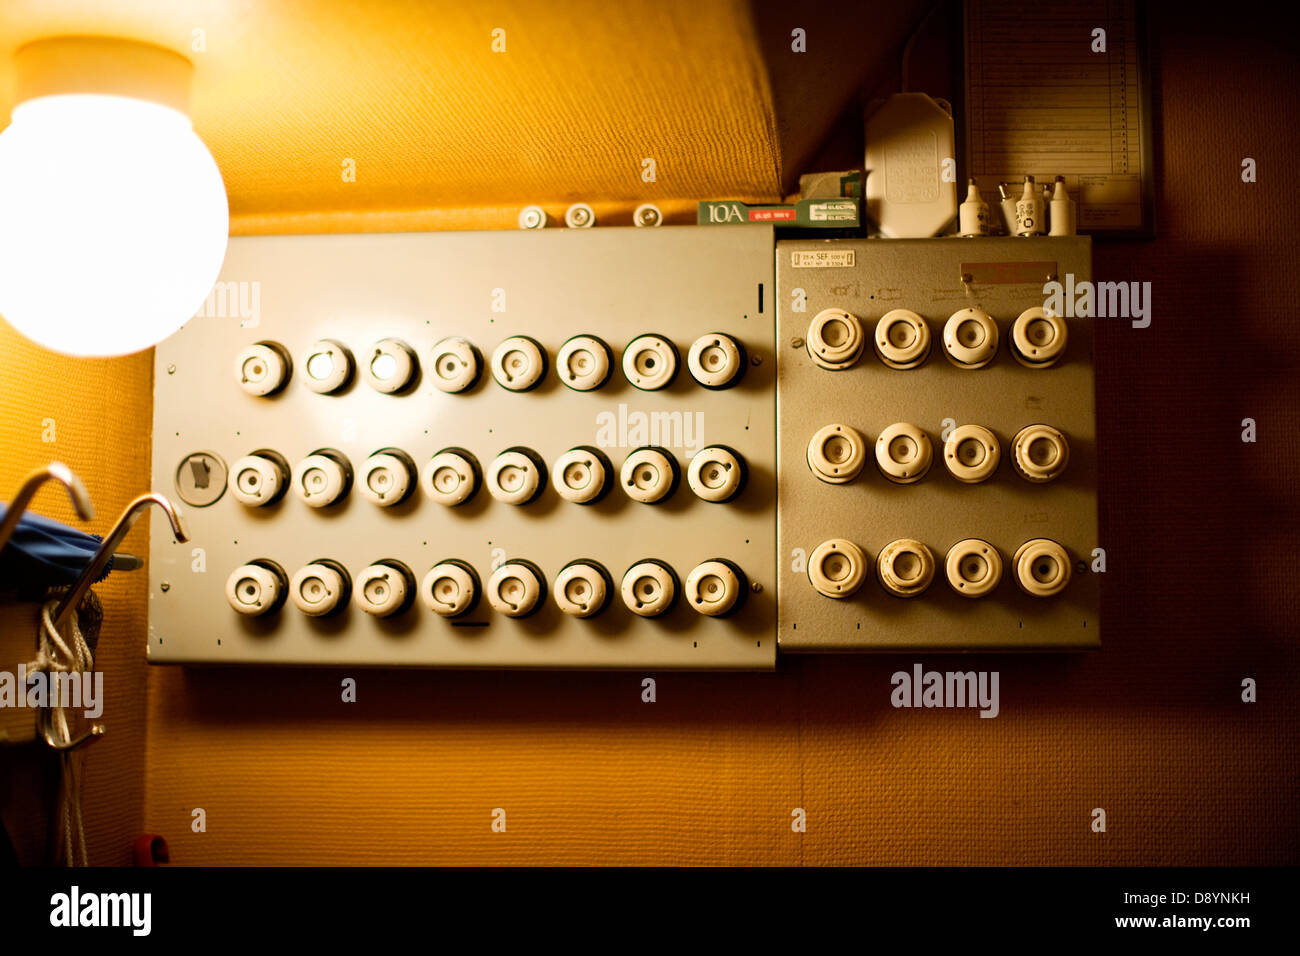 Domestic Fuse Box Stock Photos Images Alamy O Image